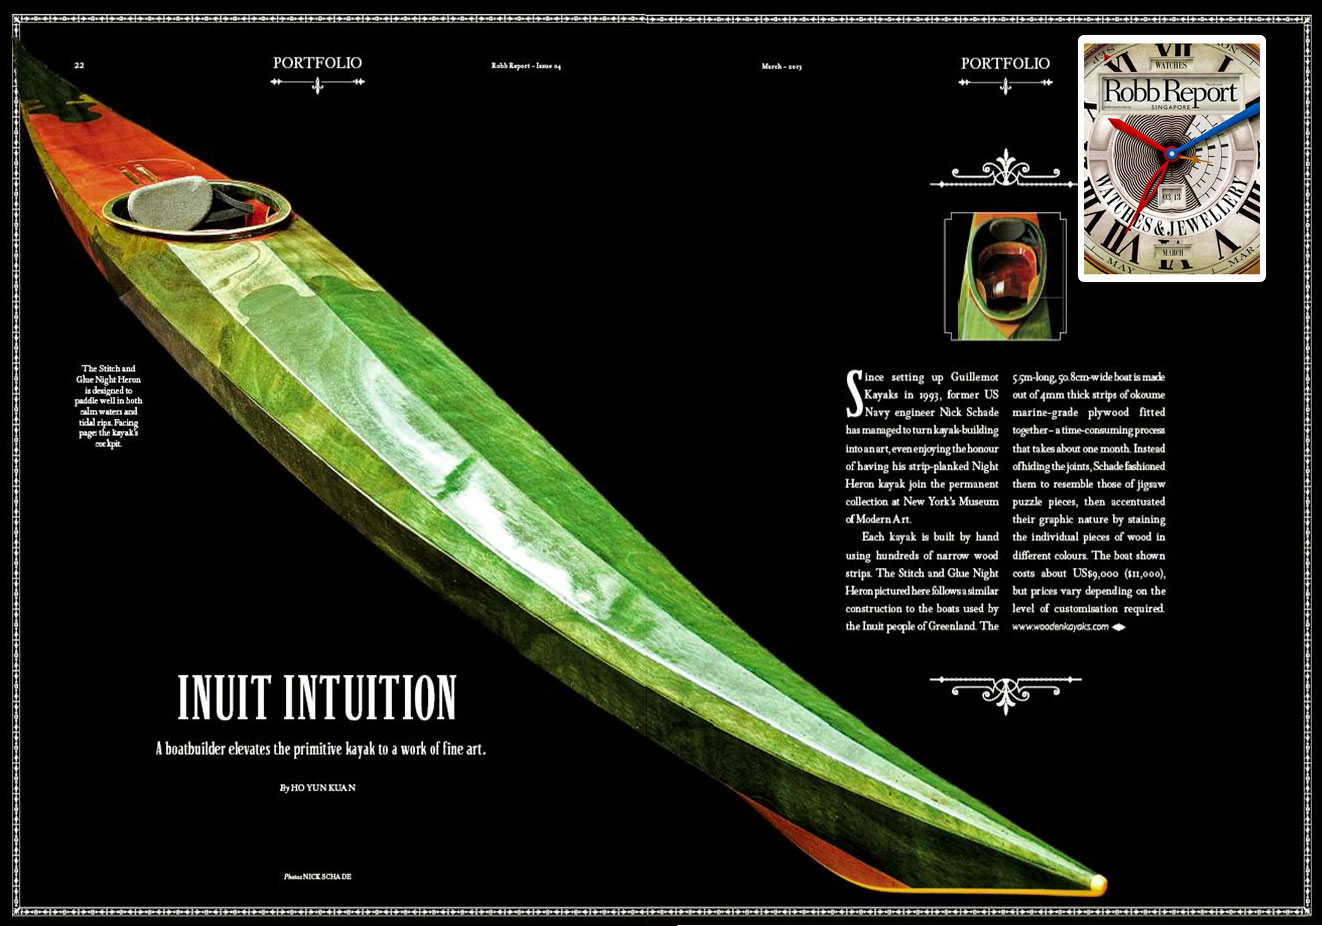 Wooden Kayak in Robb Report Singapore Mar '13